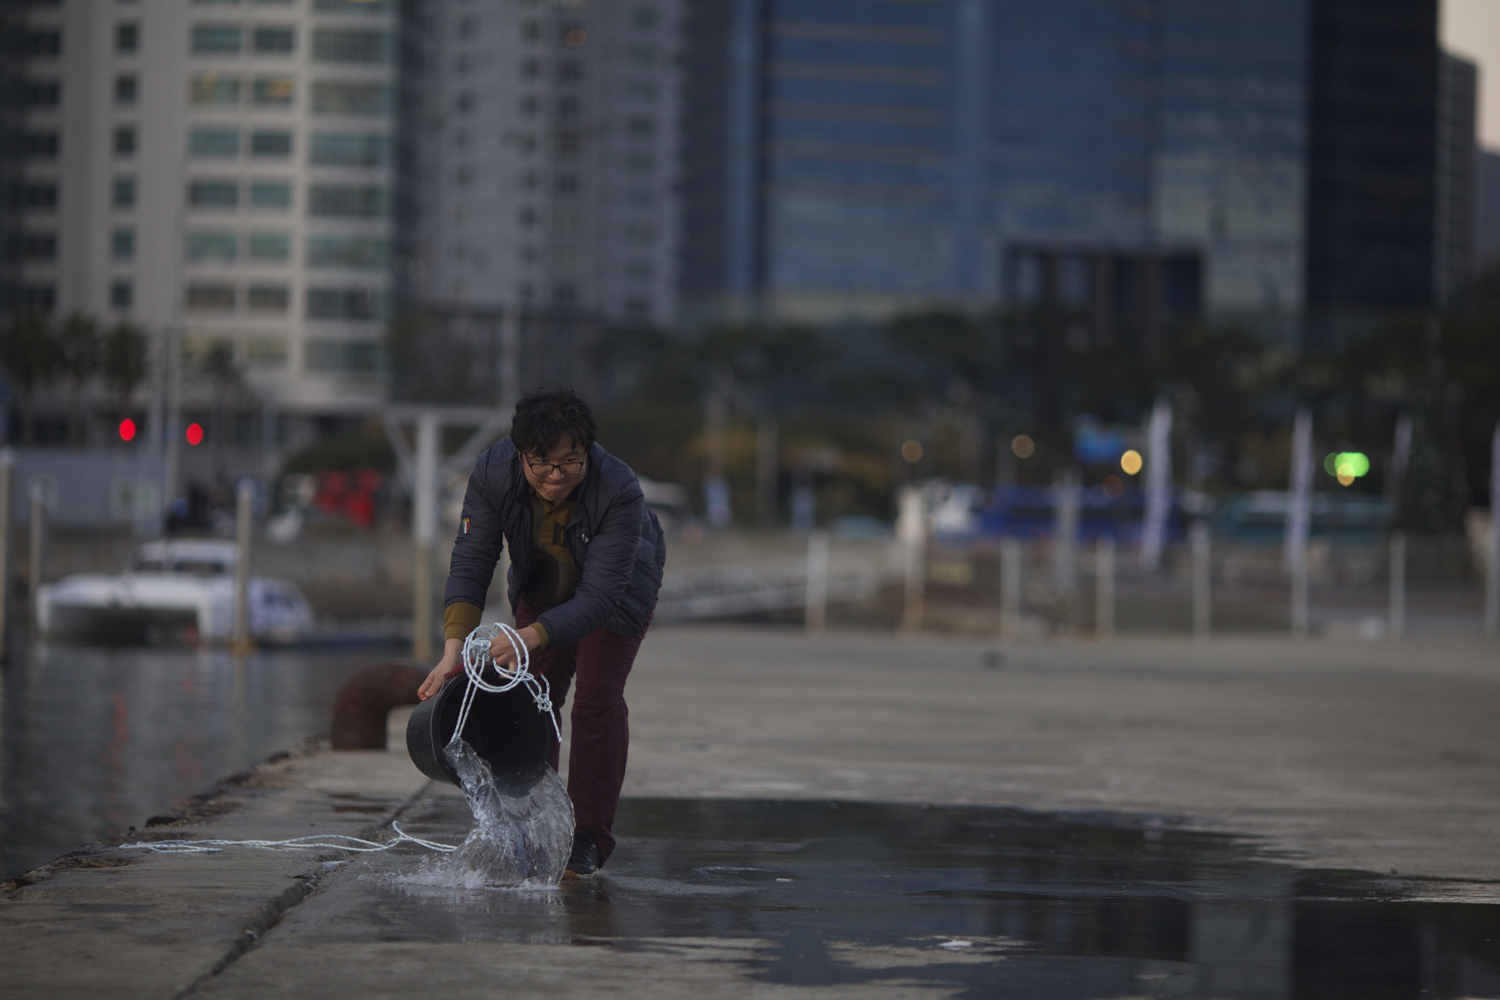 Image: In this photo, the man is preparing a reflection puddle.